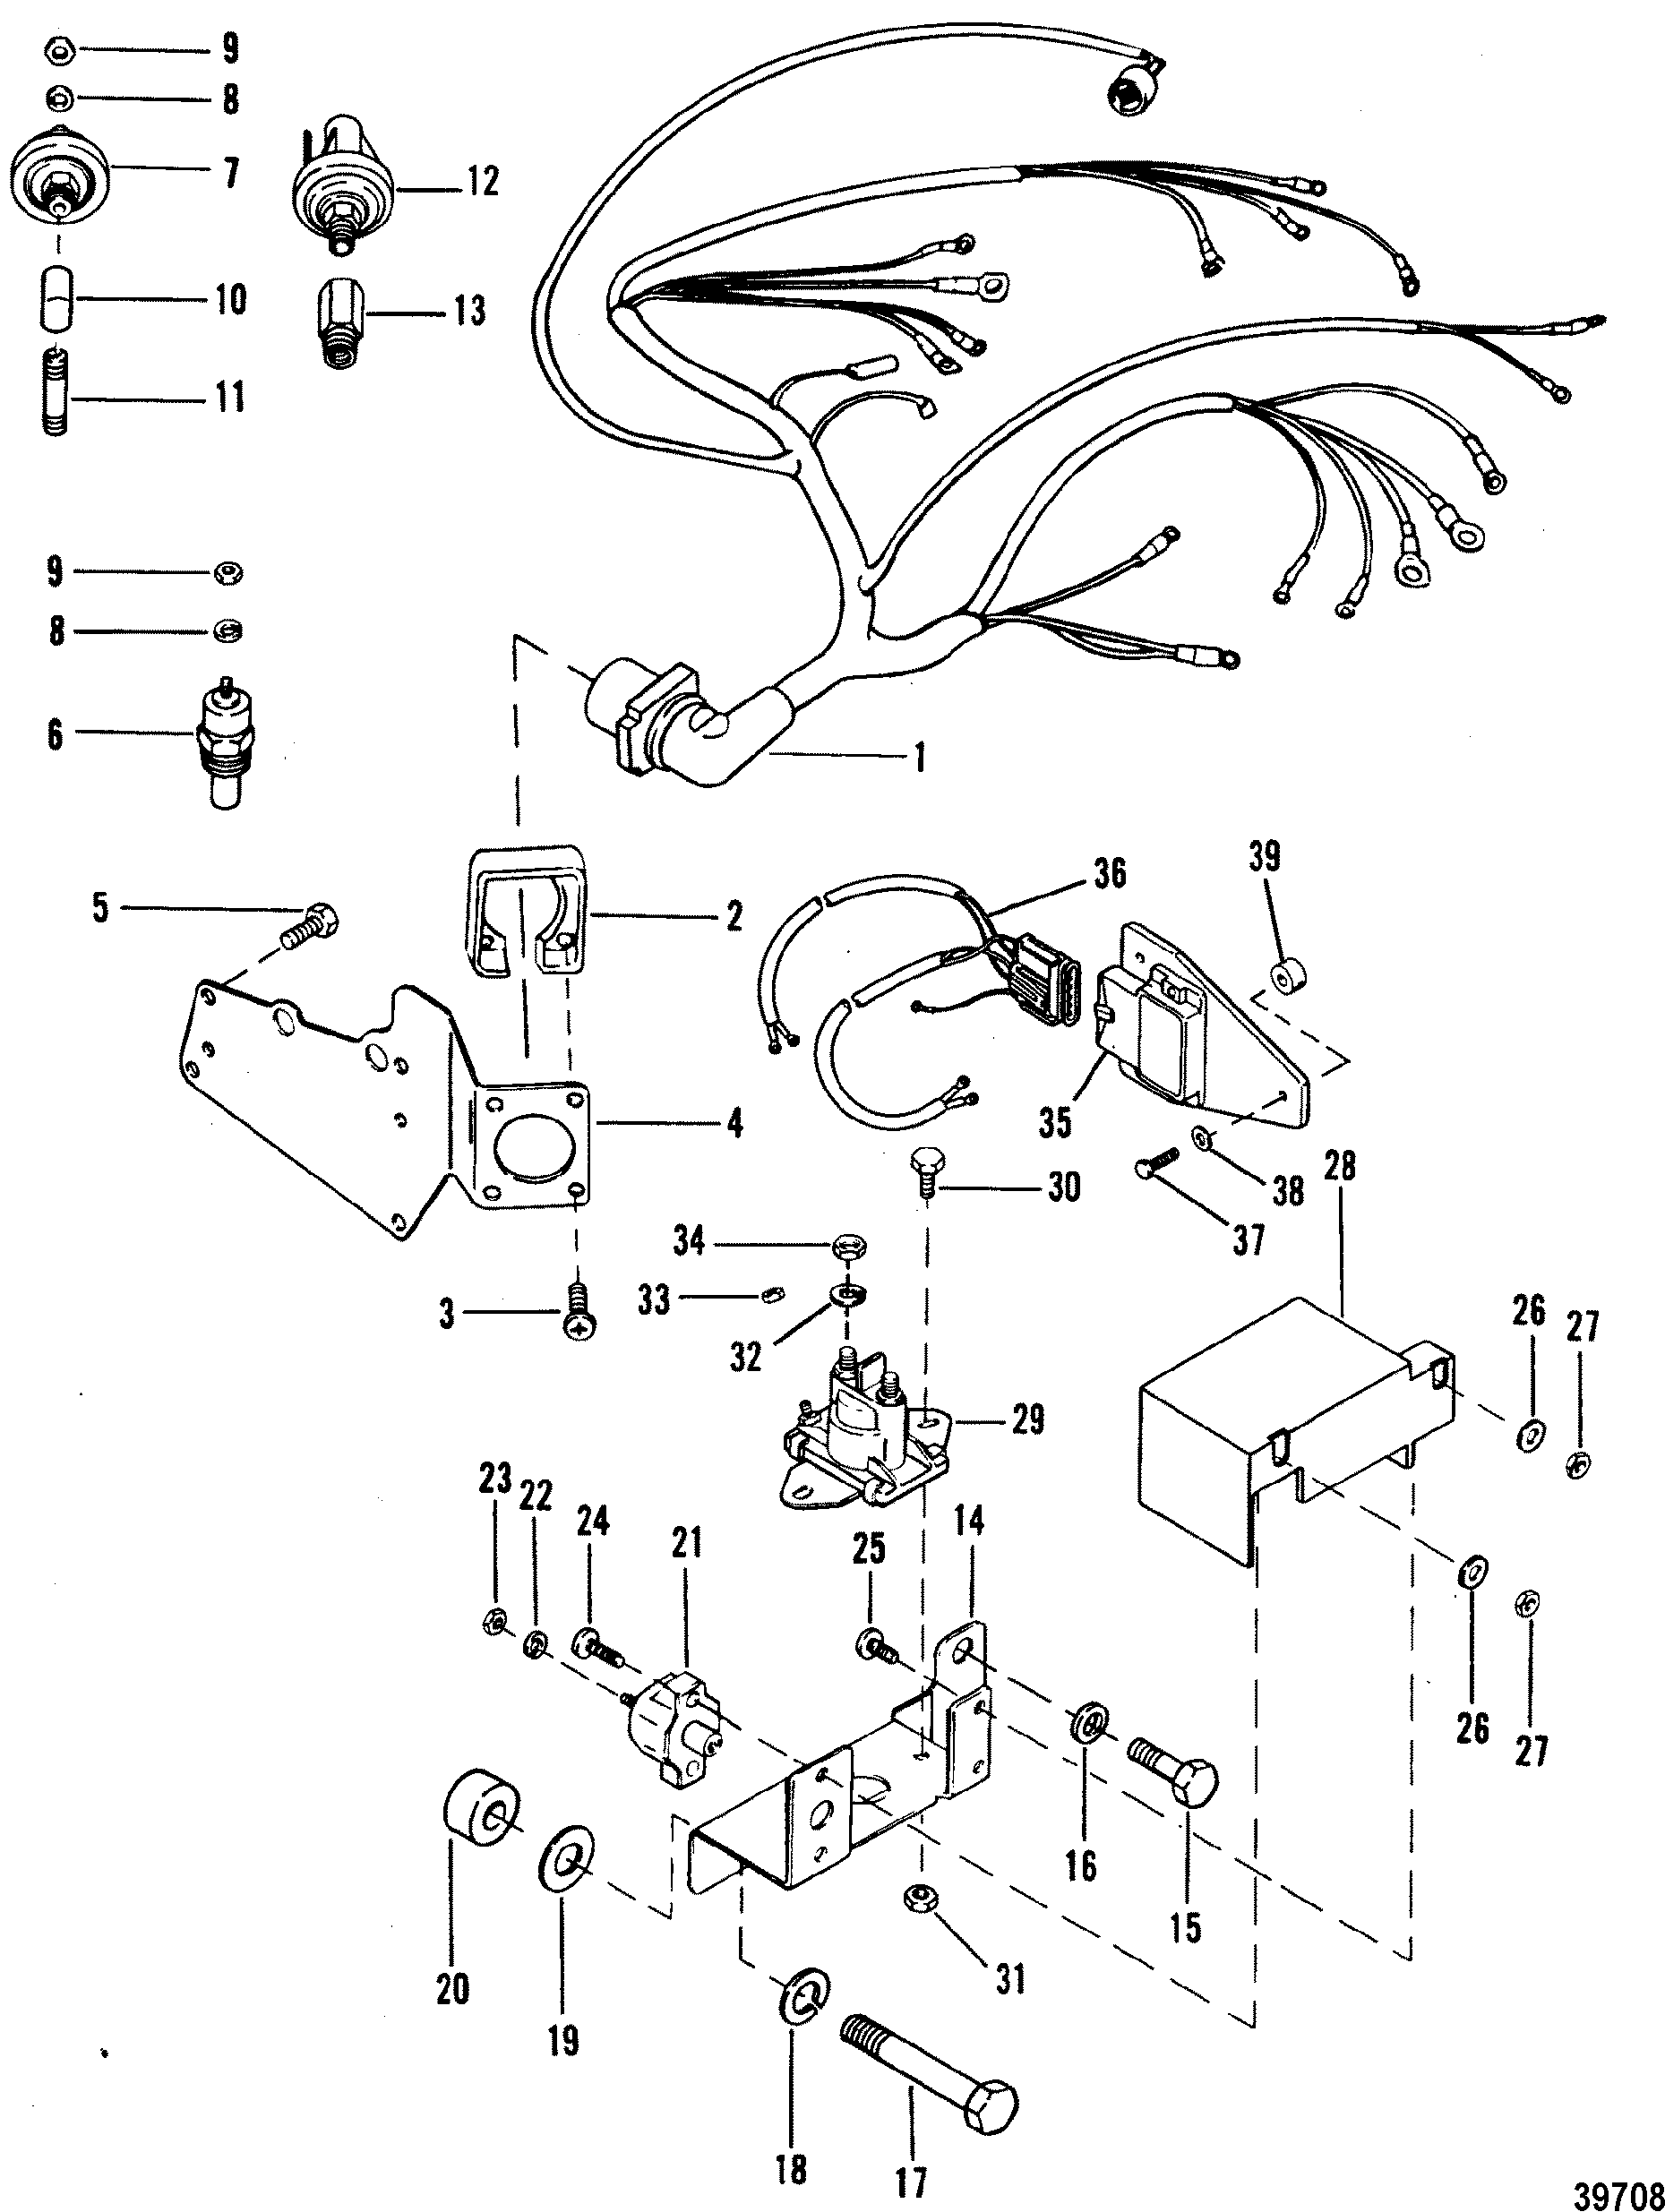 wiring harness and electrical components for mercruiser 4 3l 4 3lx outboard motor wiring harness wiring harness and electrical components for mercruiser 4 3l 4 3lx alpha one engine (262 cid)